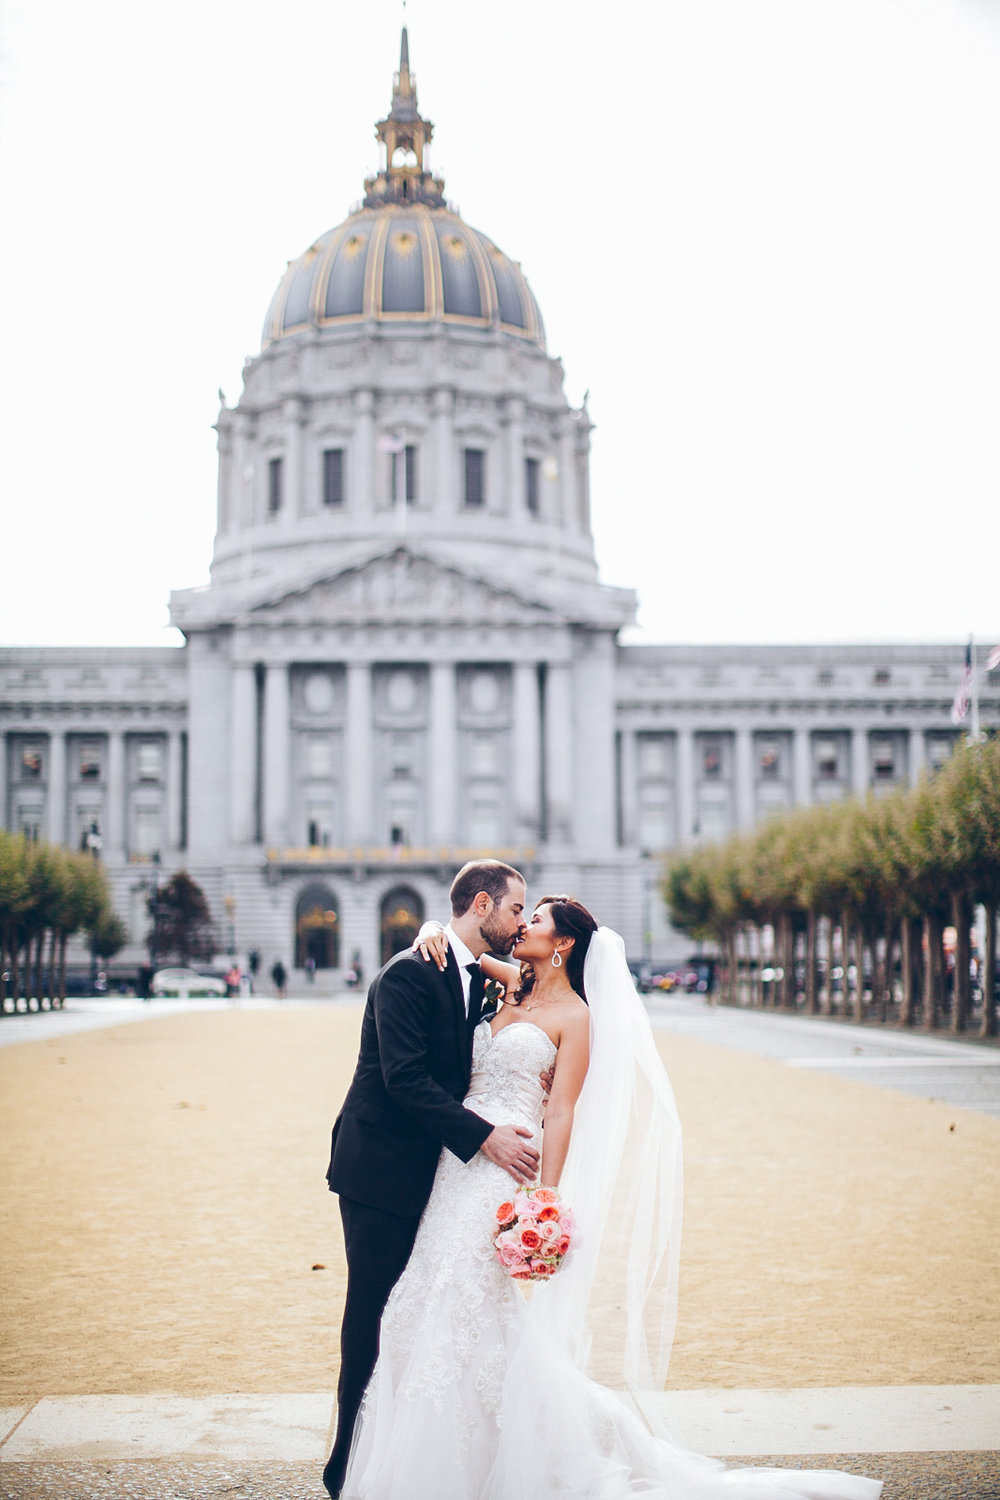 San_francisco_city_hall_wedding_photography_meegan_travis_ebony_siovhan_bokeh_photography_64.jpg